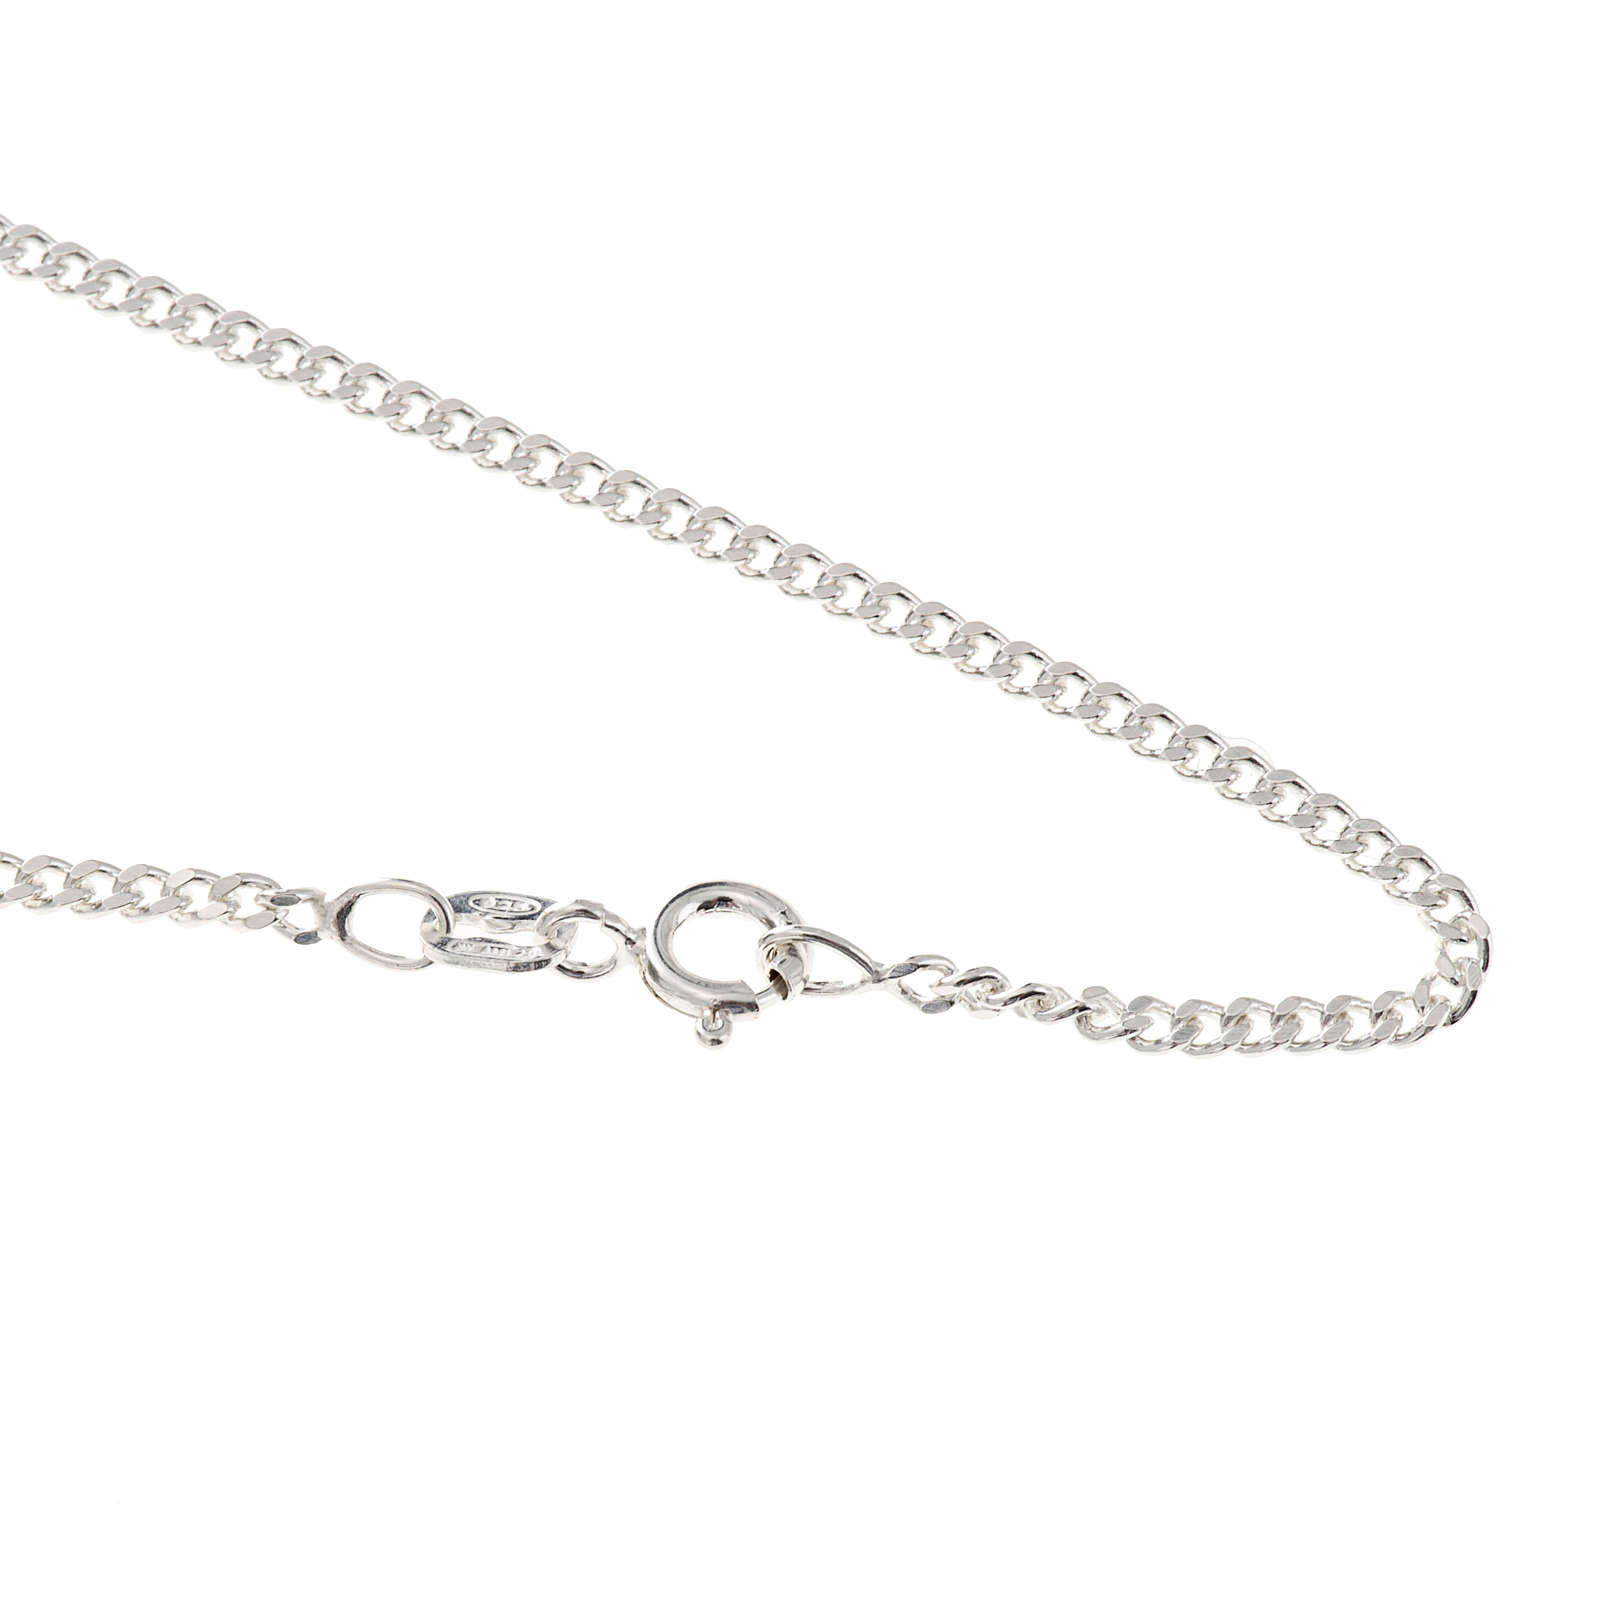 Grumetta chain in sterling silver 60cm 4